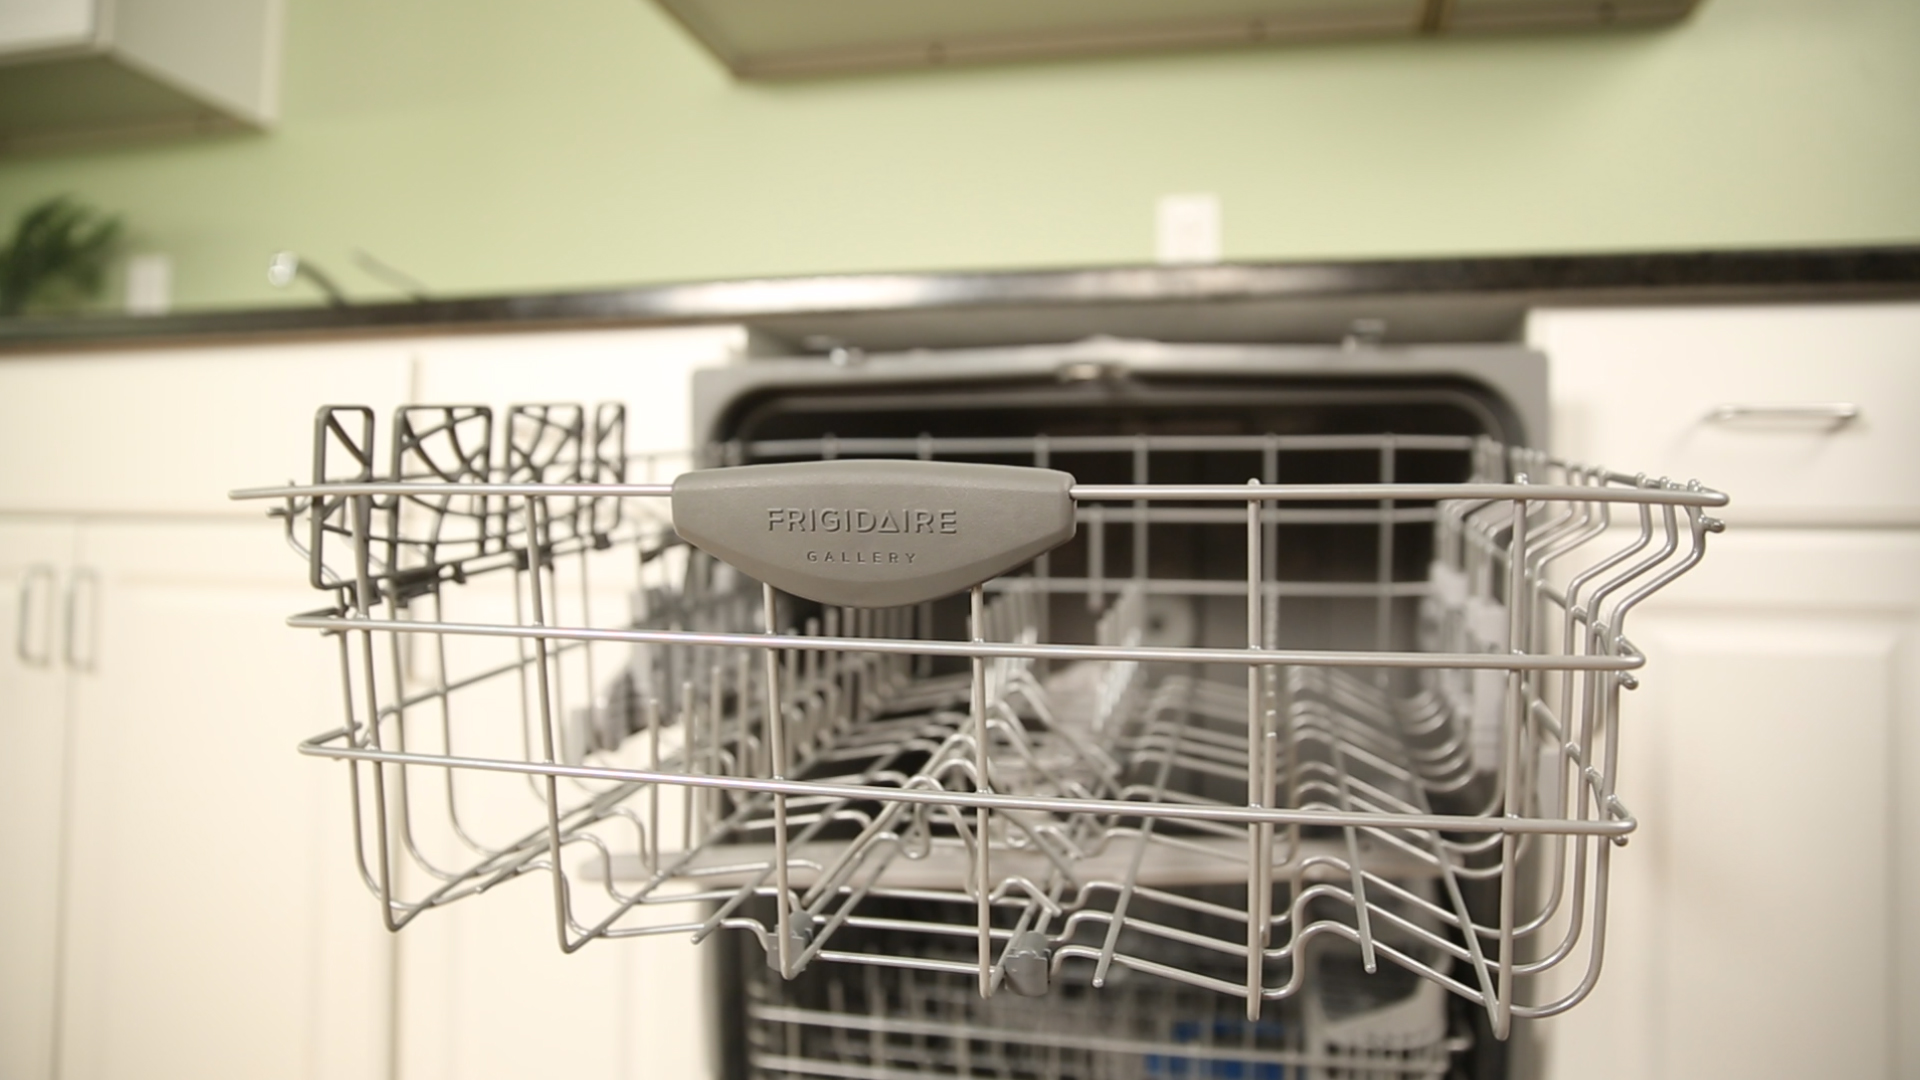 Video: Frigidaire's top rack bottoms out